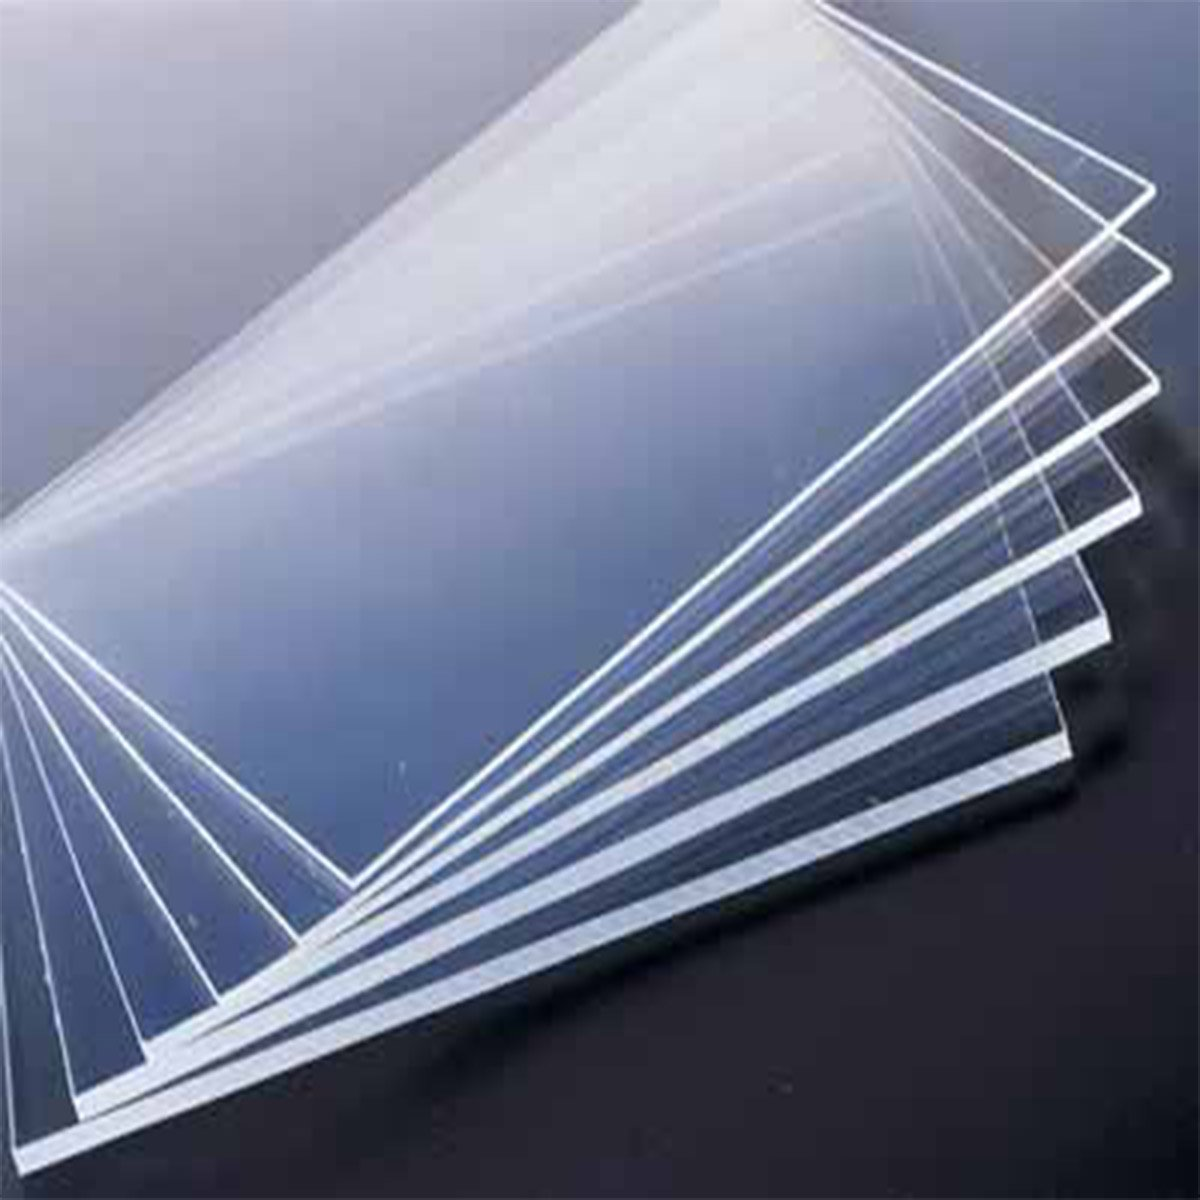 Zaktag Acrylic Sheet Plexi Glass Transparent: Amazon.in: Office ...